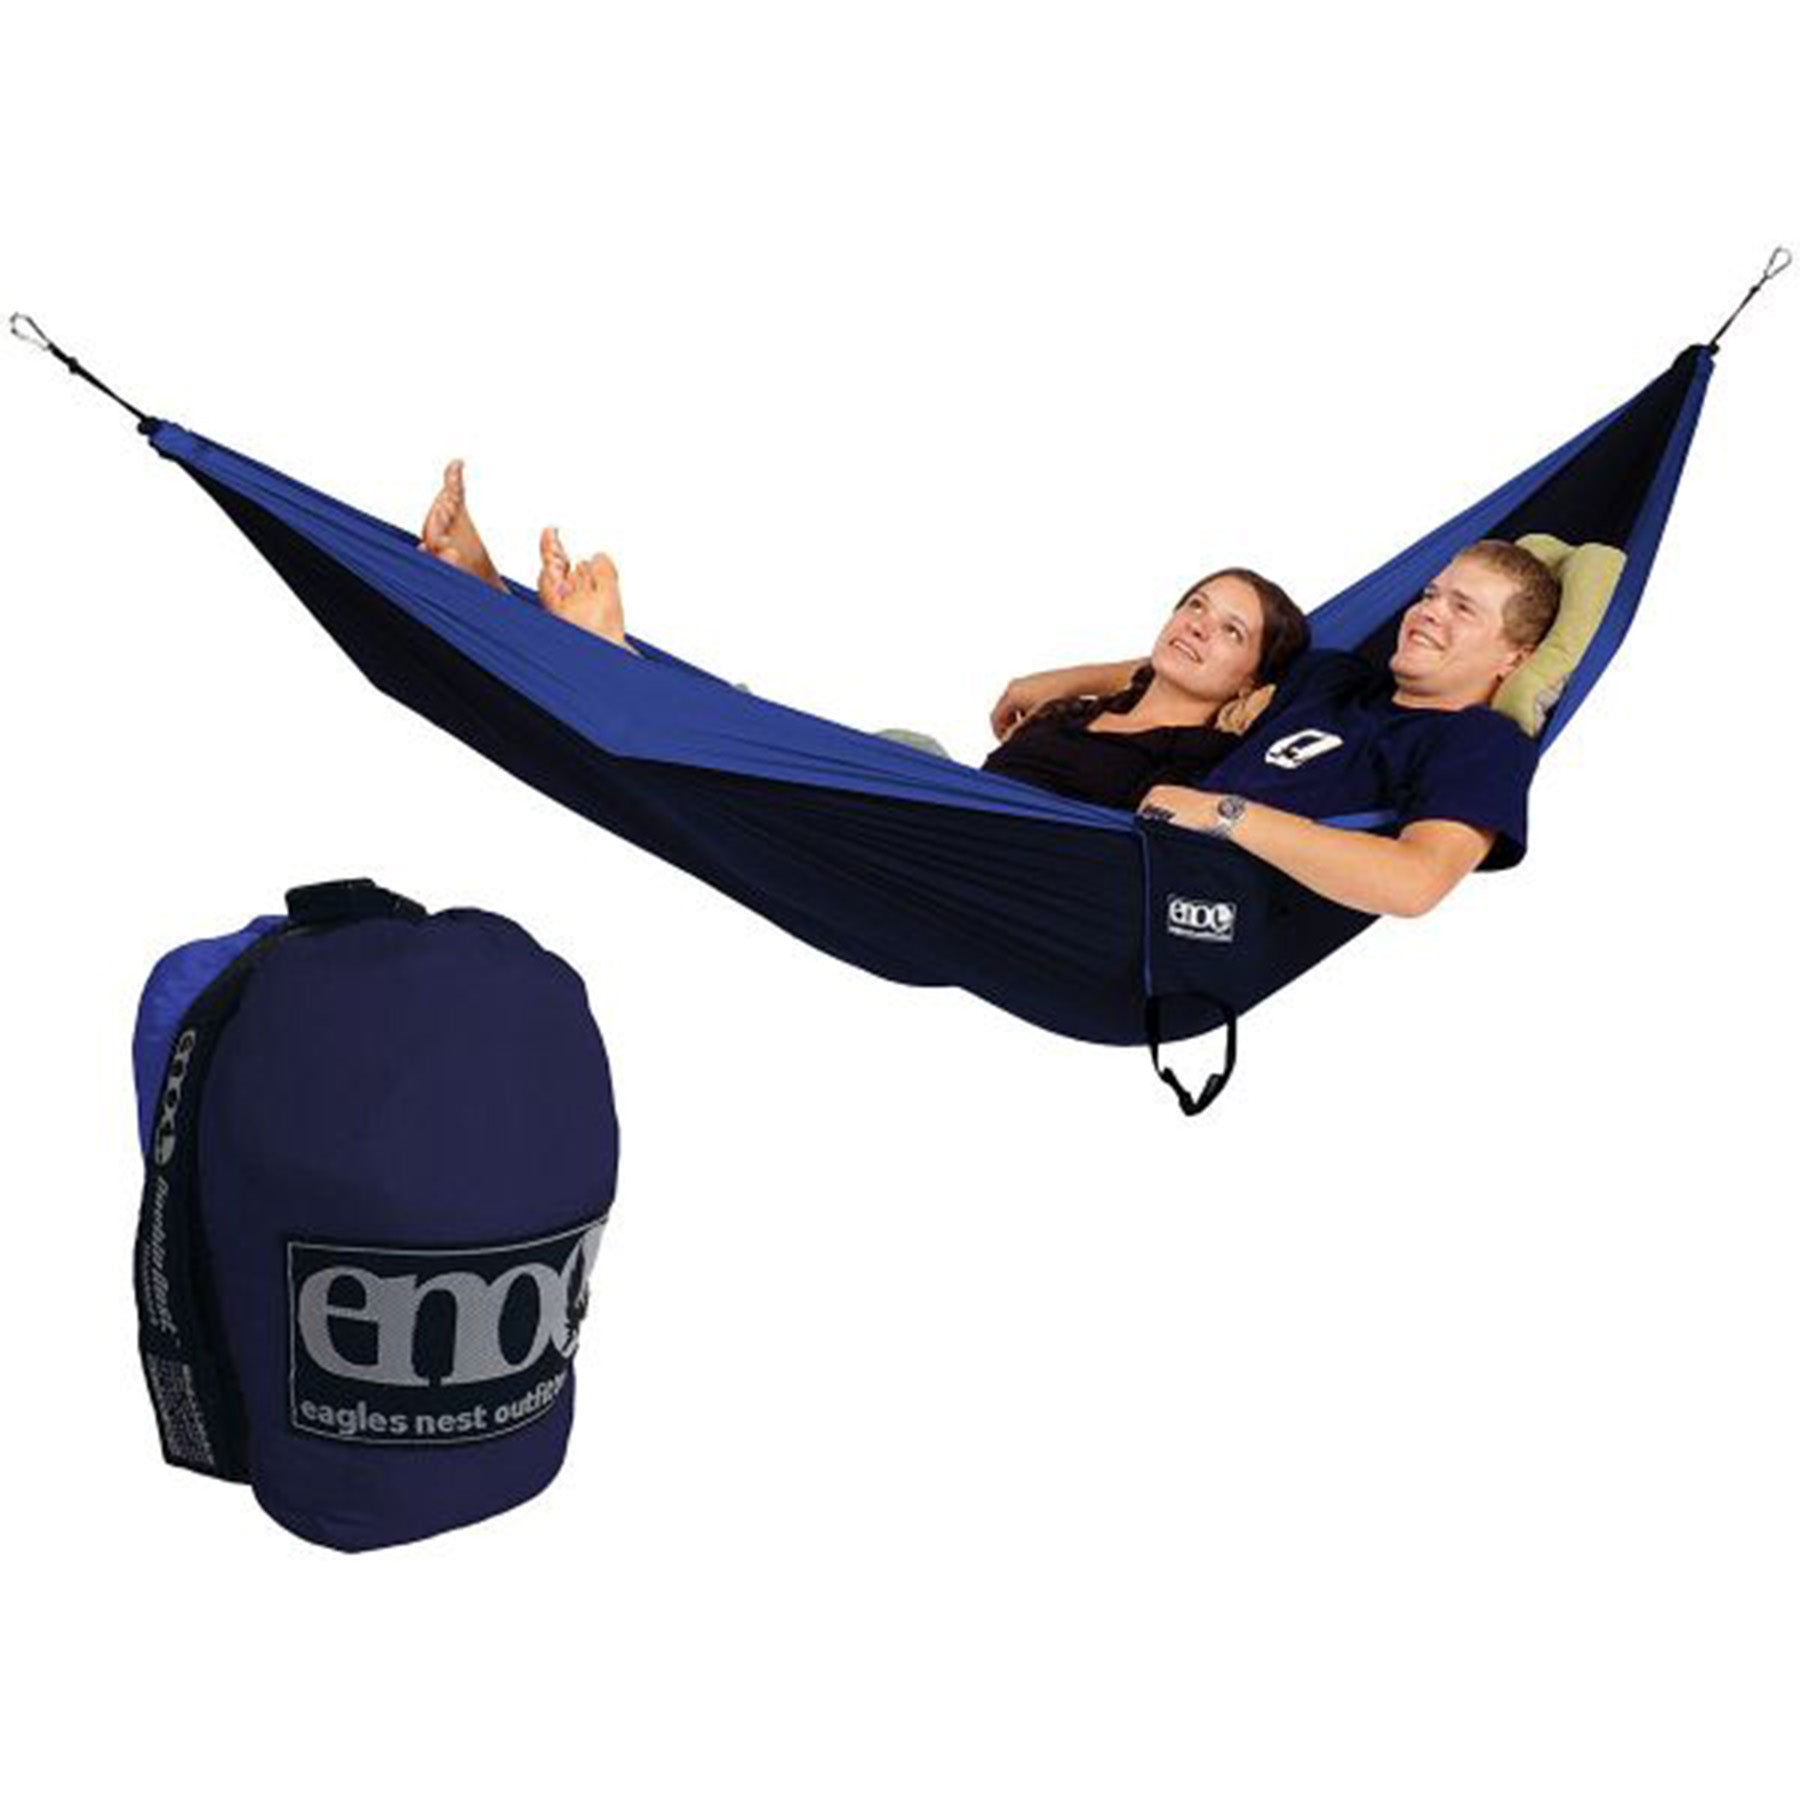 a blue hammock for 2 people